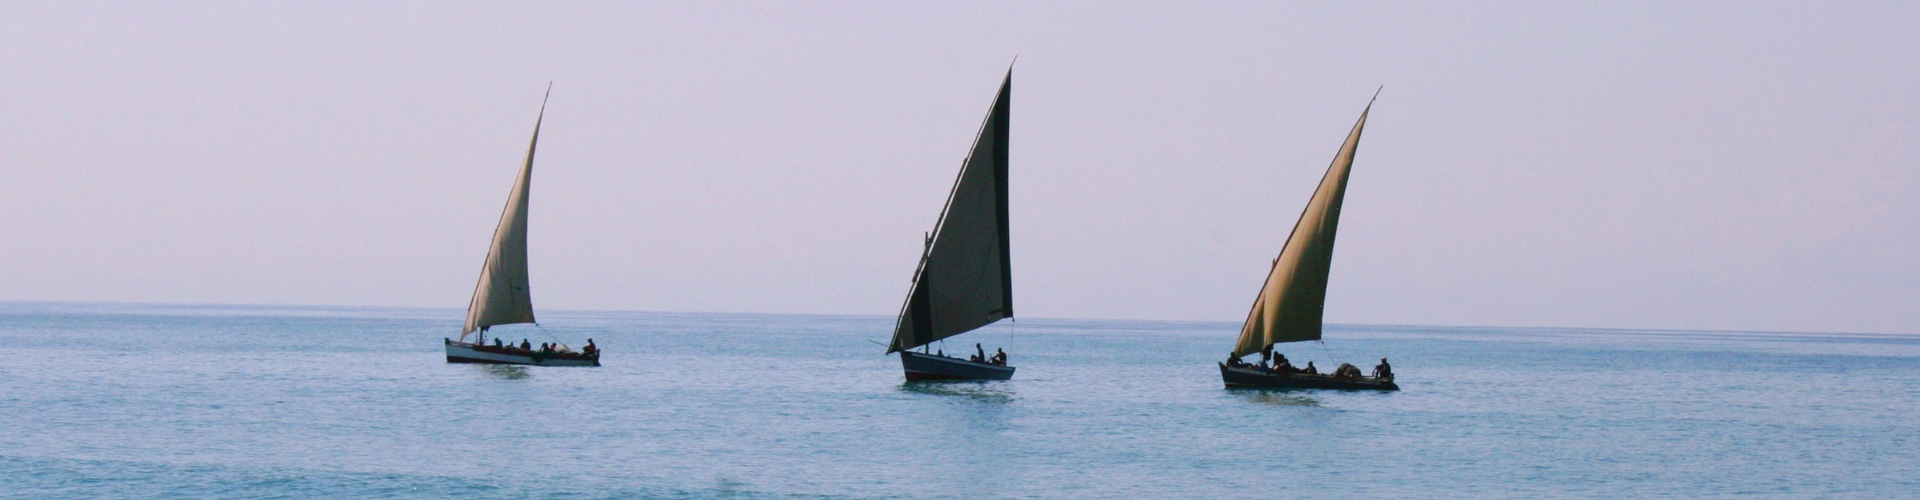 Ocean Sailing Dhow at Dawn